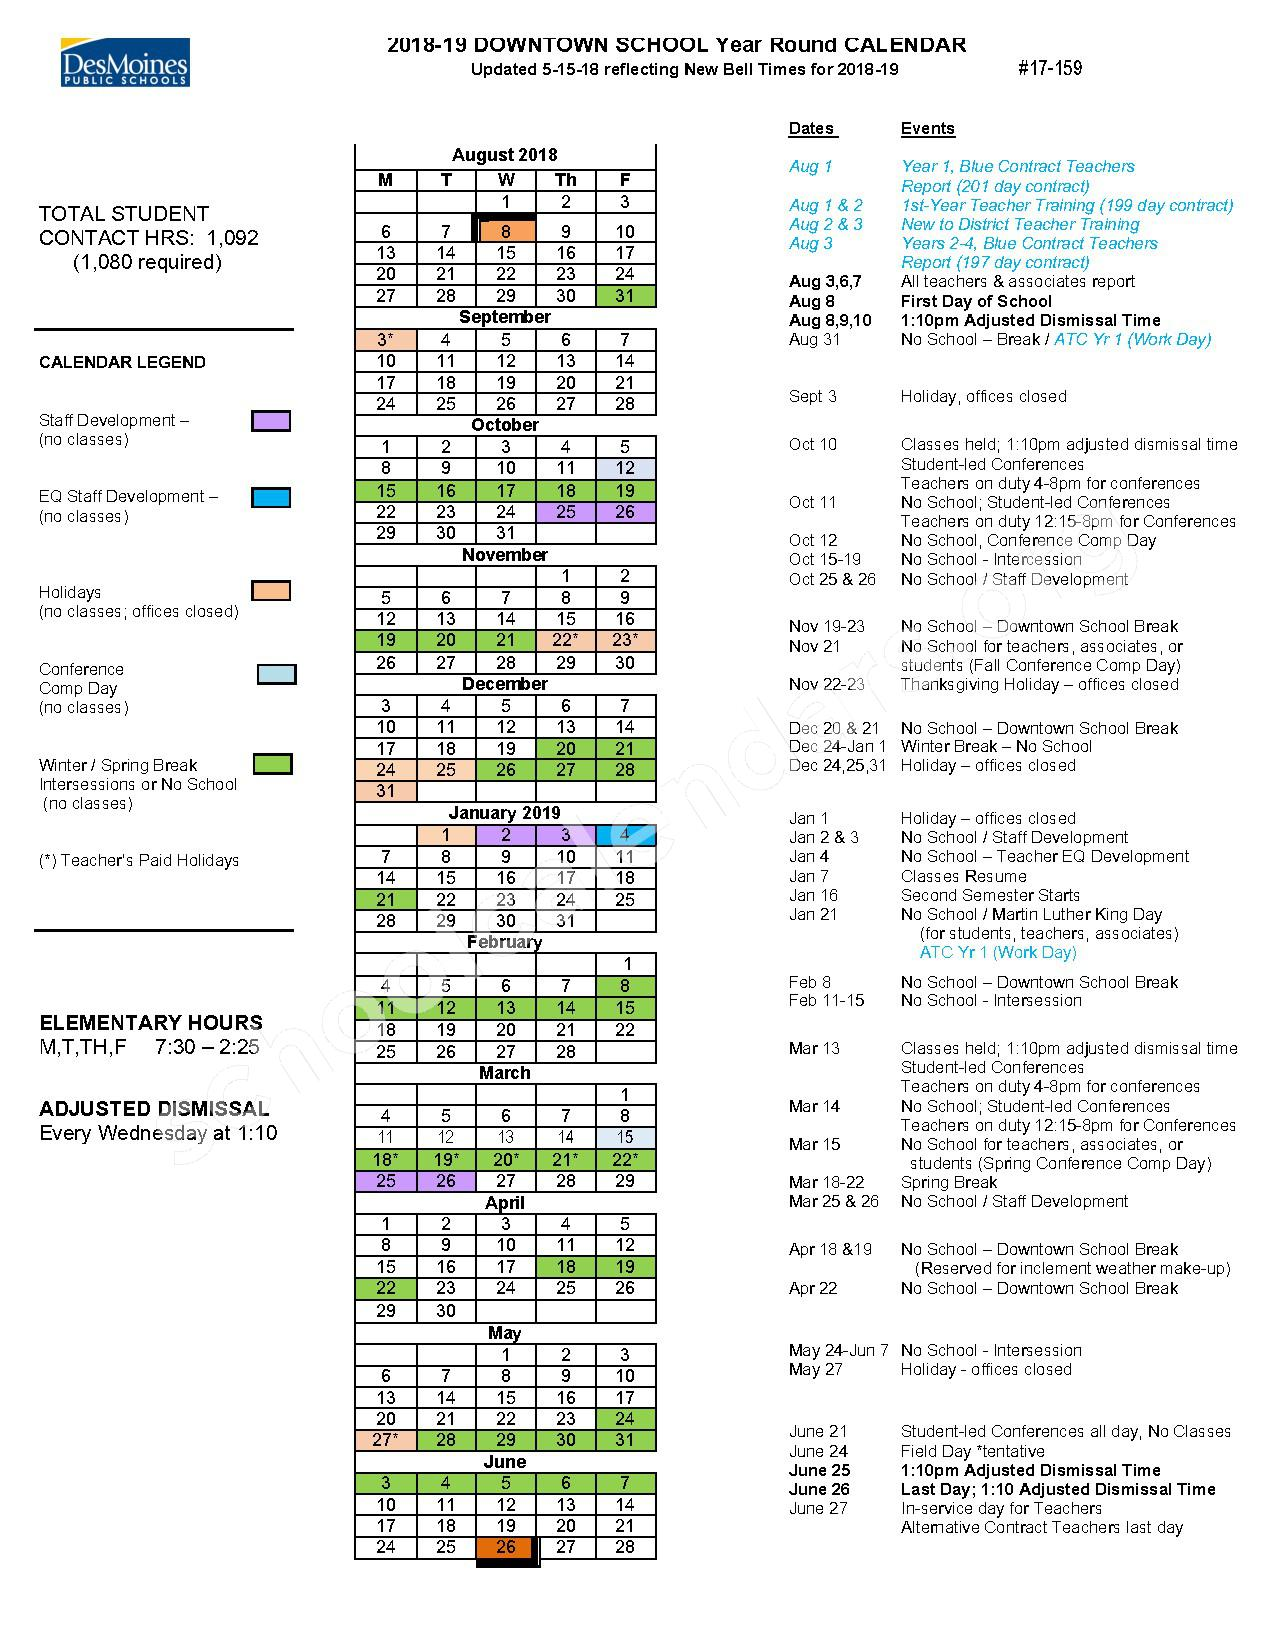 2018 - 2019 Downtown School Year-Round Calendar – Des Moines Independent Community School District – page 1